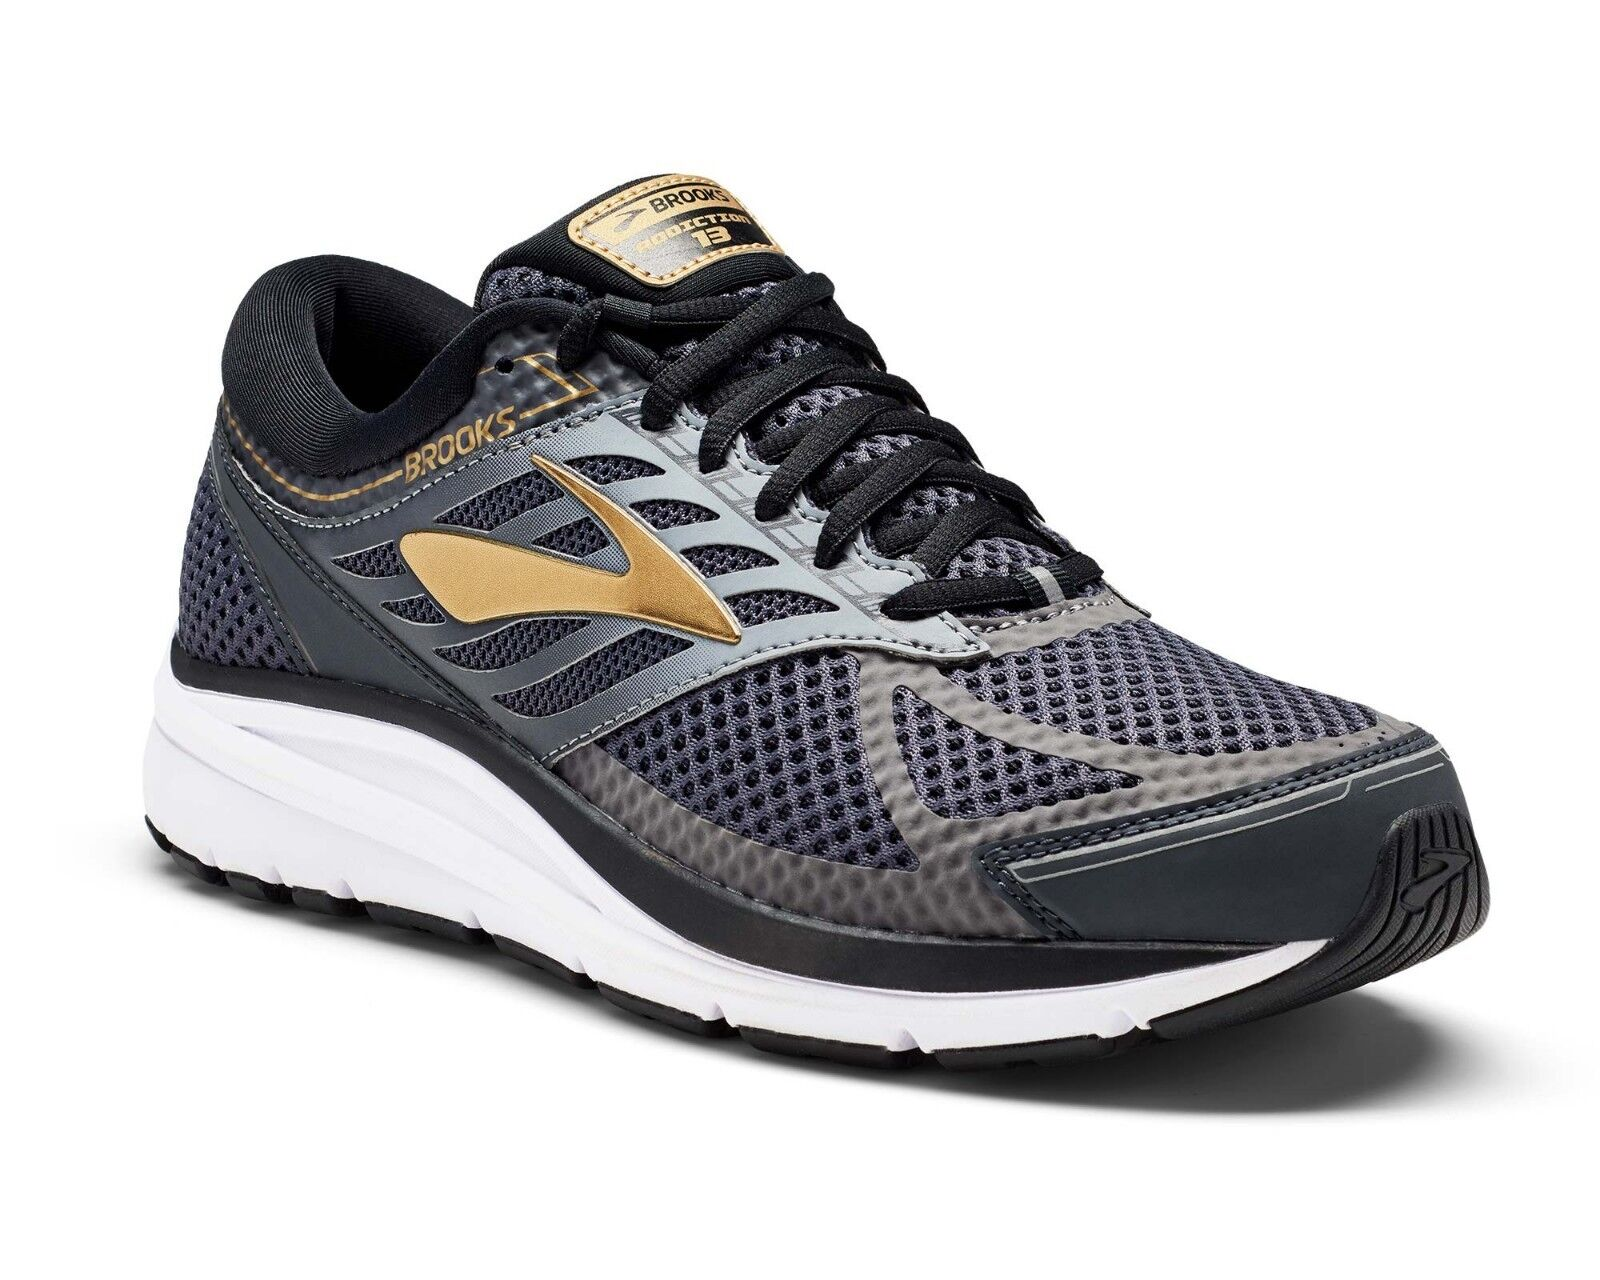 Authentic Brooks Addiction 13 Mens Running shoes (4E) (091)